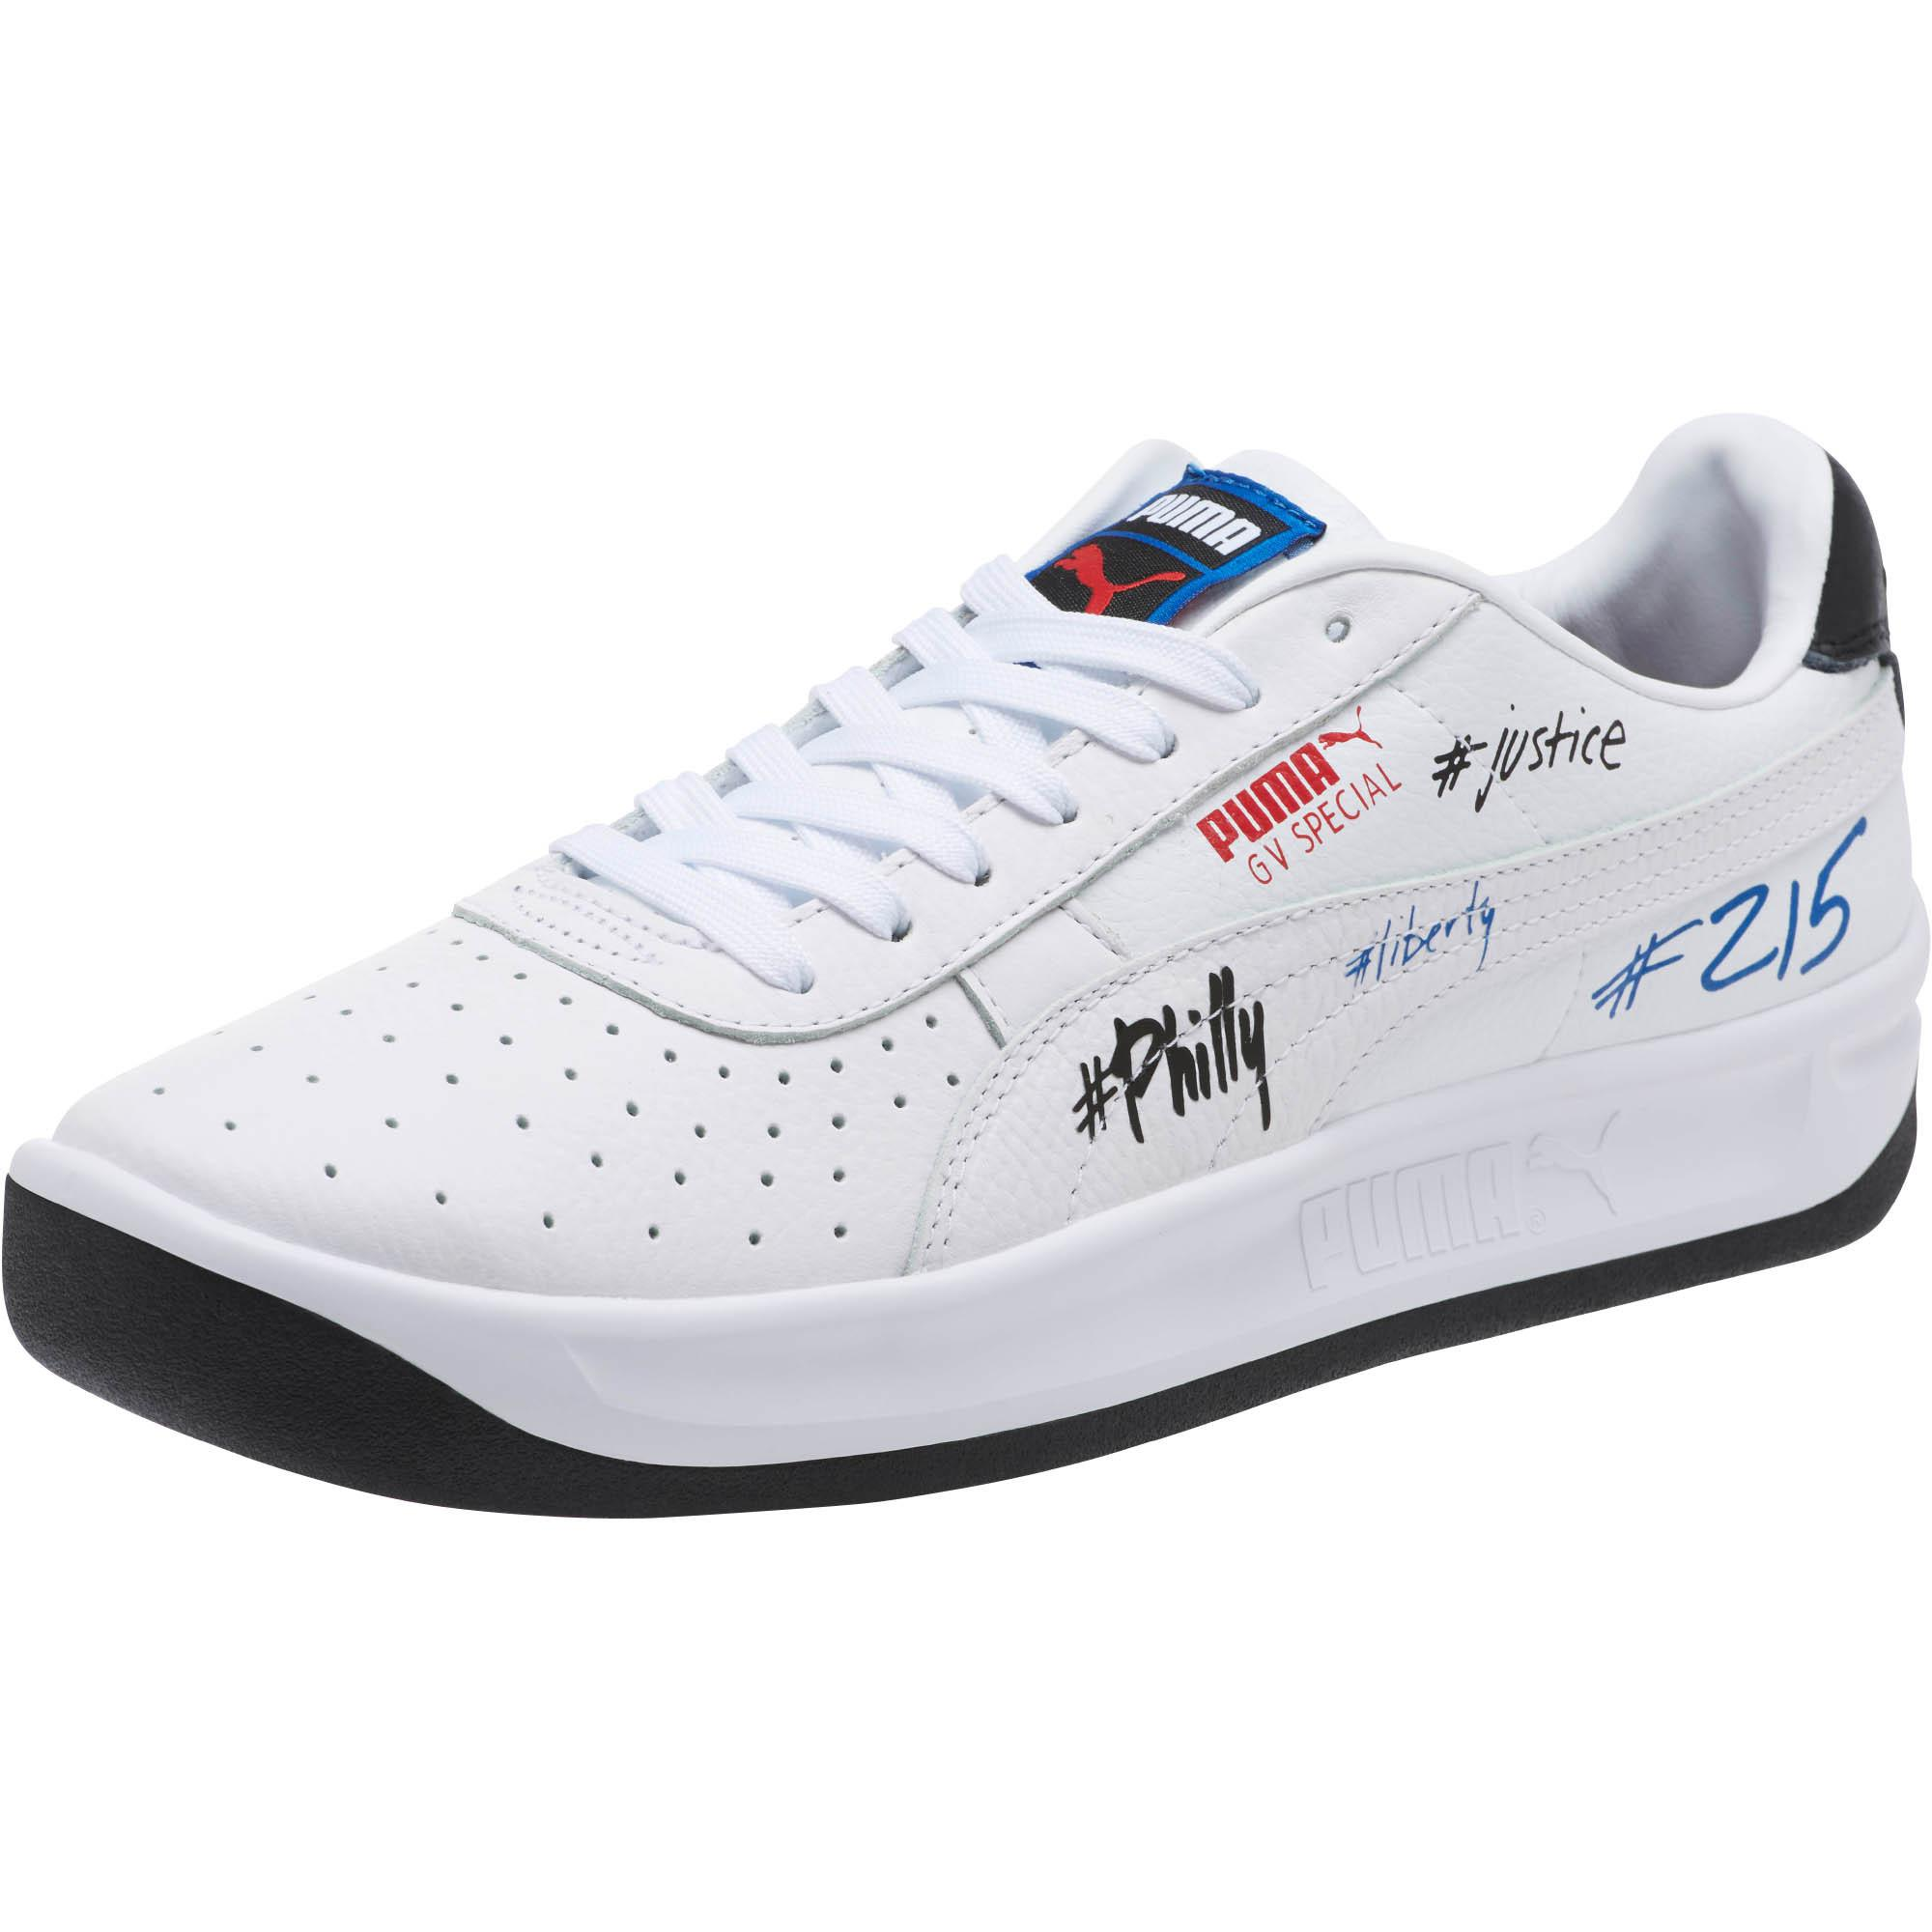 bc854eb76584 Lyst - PUMA Gv Special Philly Sneakers in White for Men - Save 29%